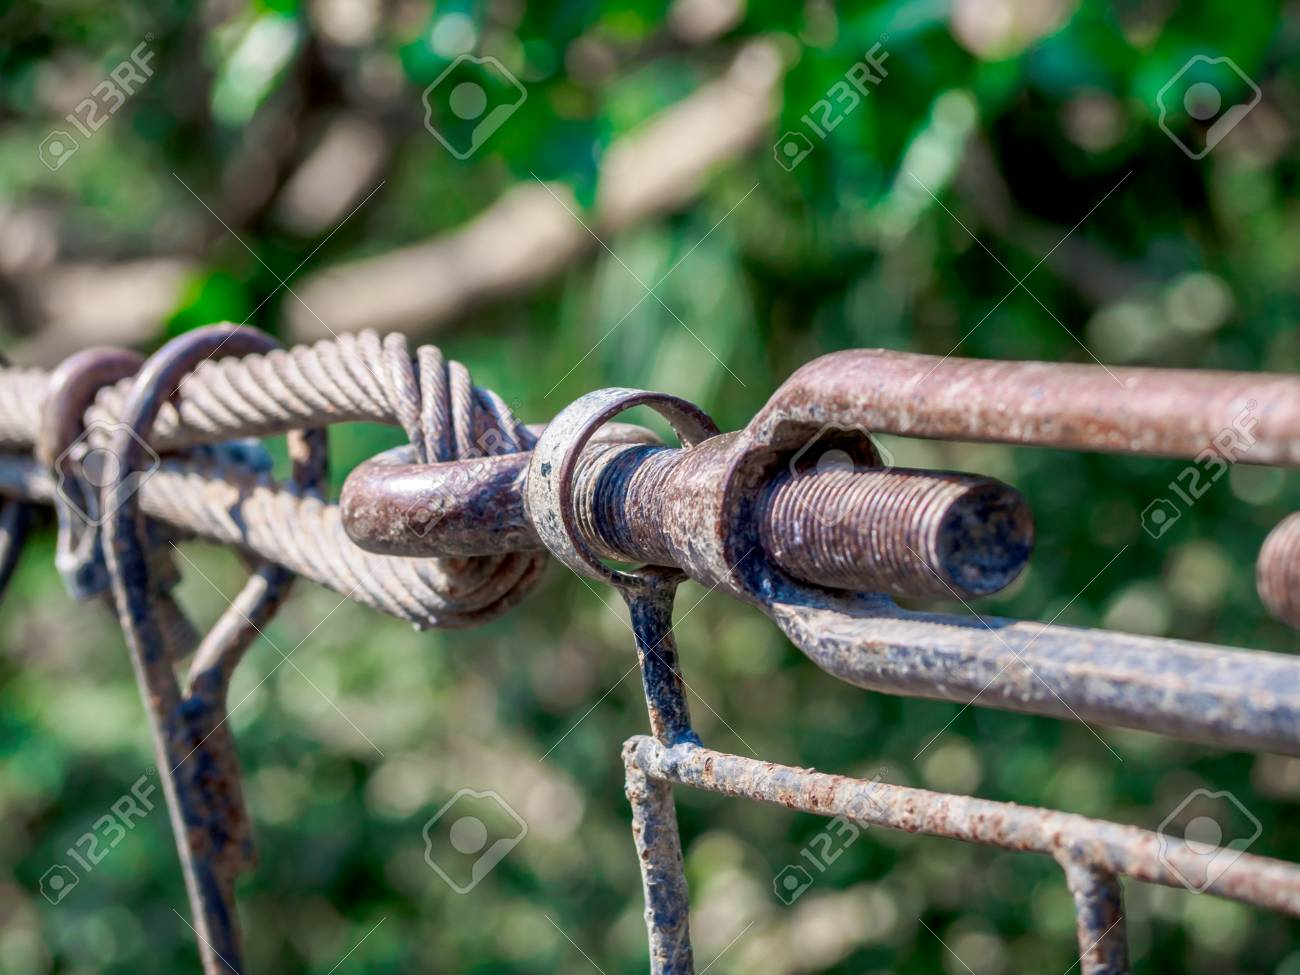 Rusty sling hook and knots close, bolts used to mount the bridge